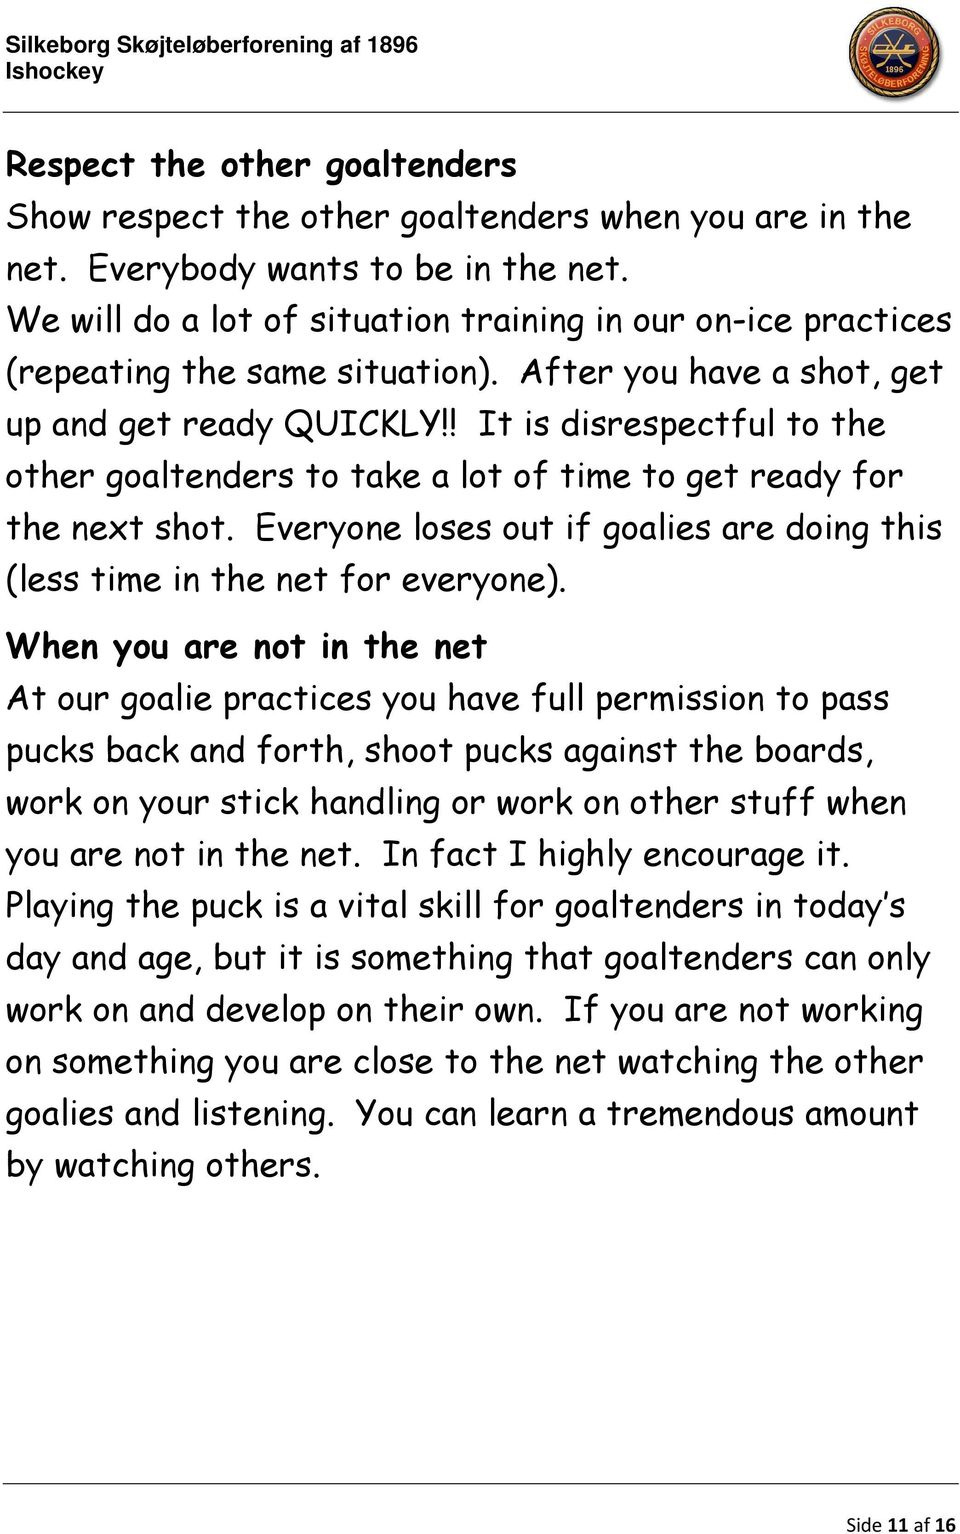 ! It is disrespectful to the other goaltenders to take a lot of time to get ready for the next shot. Everyone loses out if goalies are doing this (less time in the net for everyone).